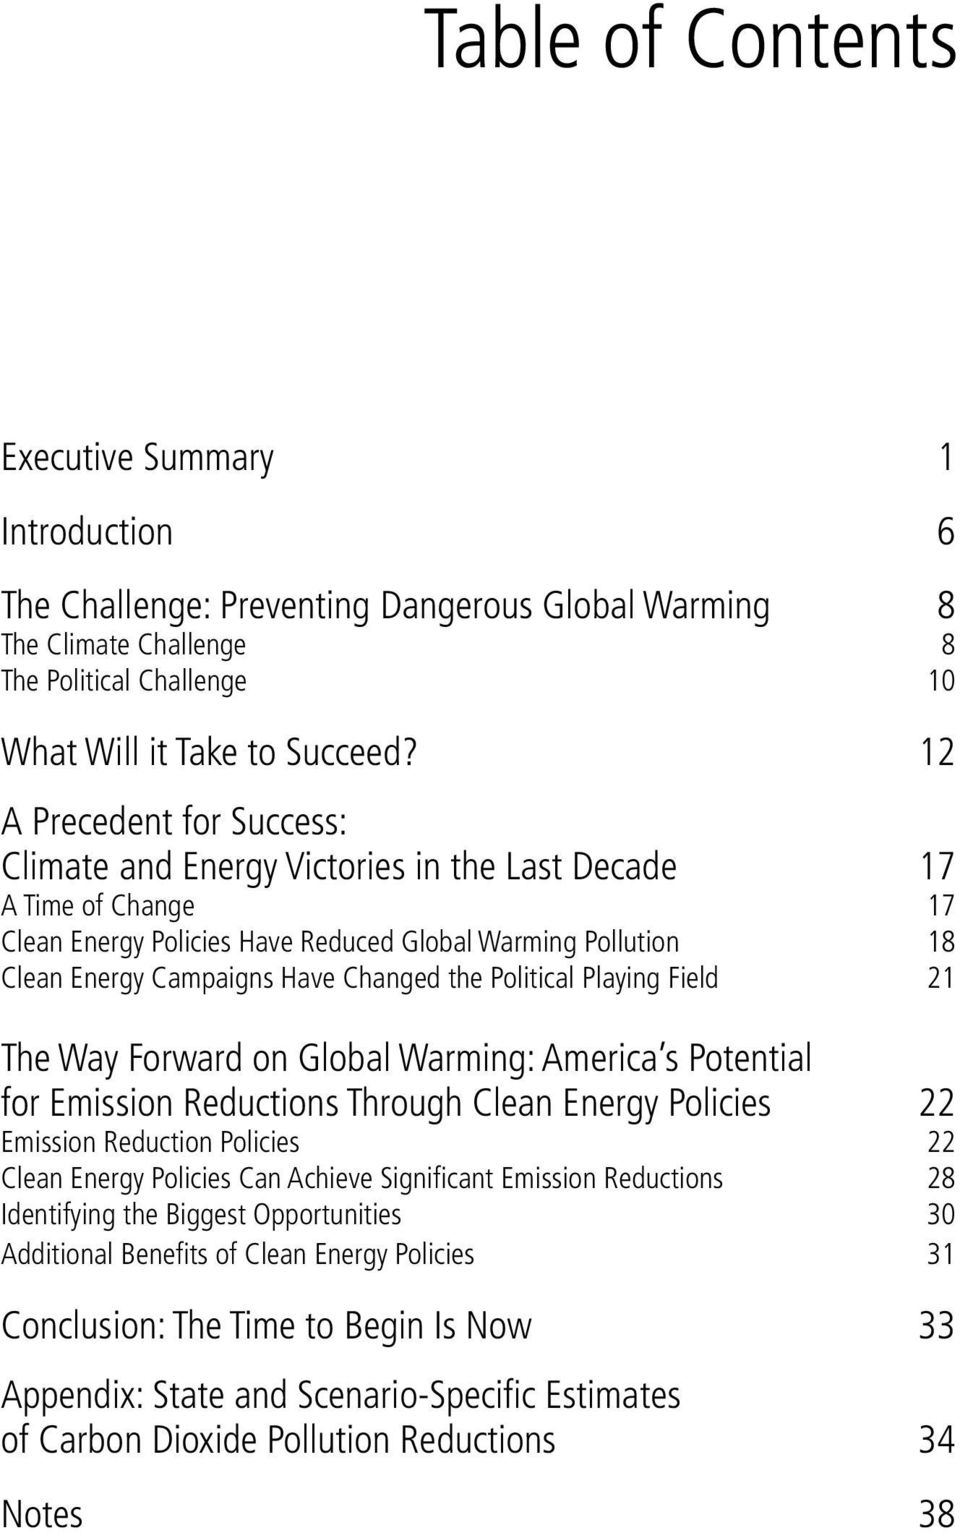 the Political Playing Field 21 The Way Forward on Global Warming: America s Potential for Emission Reductions Through Clean Energy Policies 22 Emission Reduction Policies 22 Clean Energy Policies Can